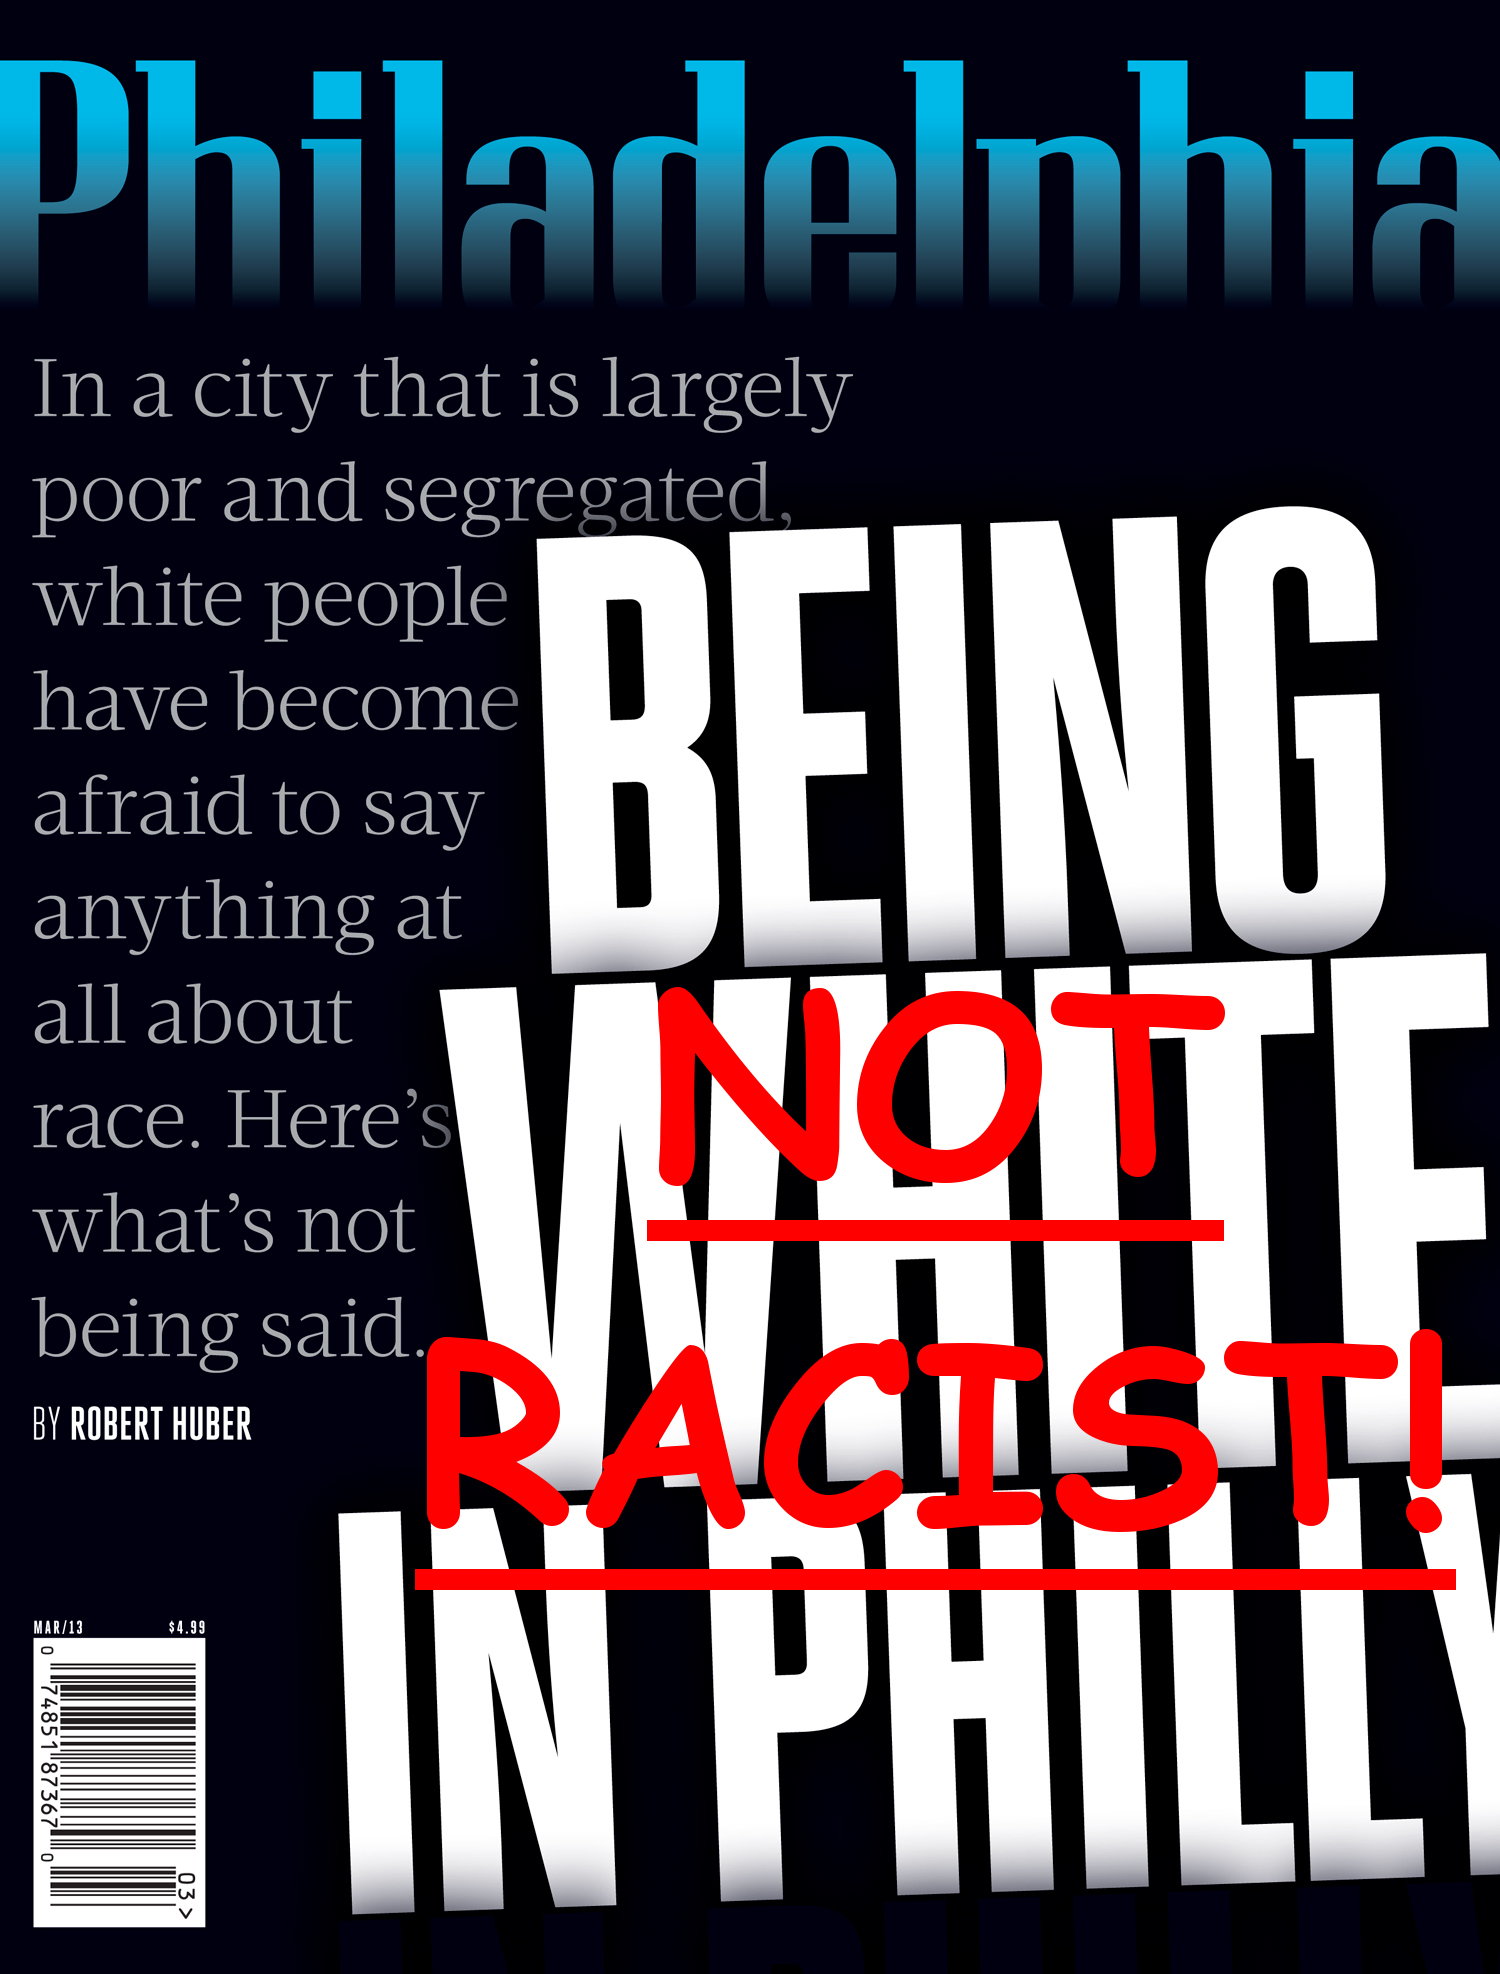 """prejudice and discrimination in philadelphia The discrimination faced by the famine refugees was not subtle or insidious it was right there in black and white, in newspaper classified advertisement s that blared """"no irish need apply""""."""